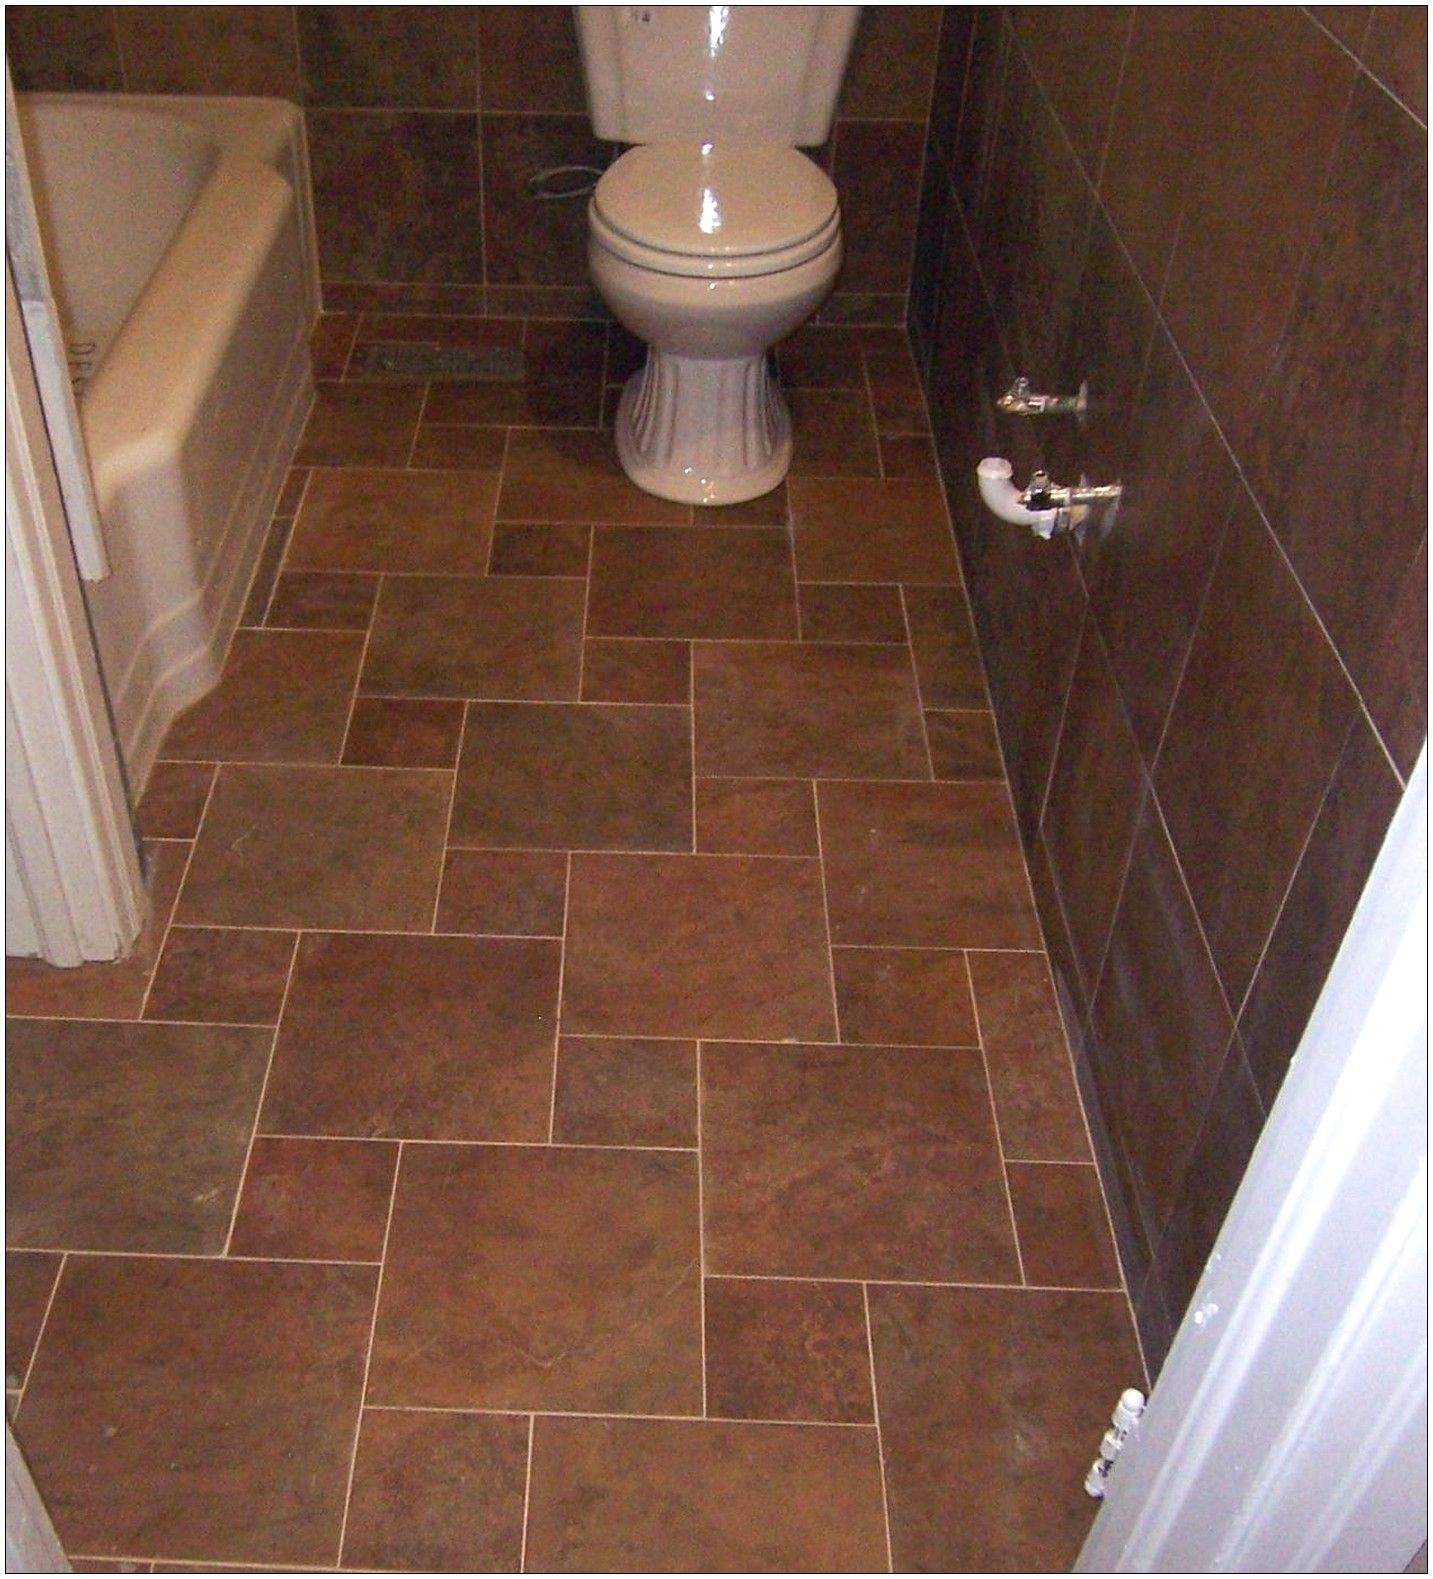 Bathroom Floor Tile Designs Small Bathroom Floor Tile Designs Bathroom Floor Tile Patterns